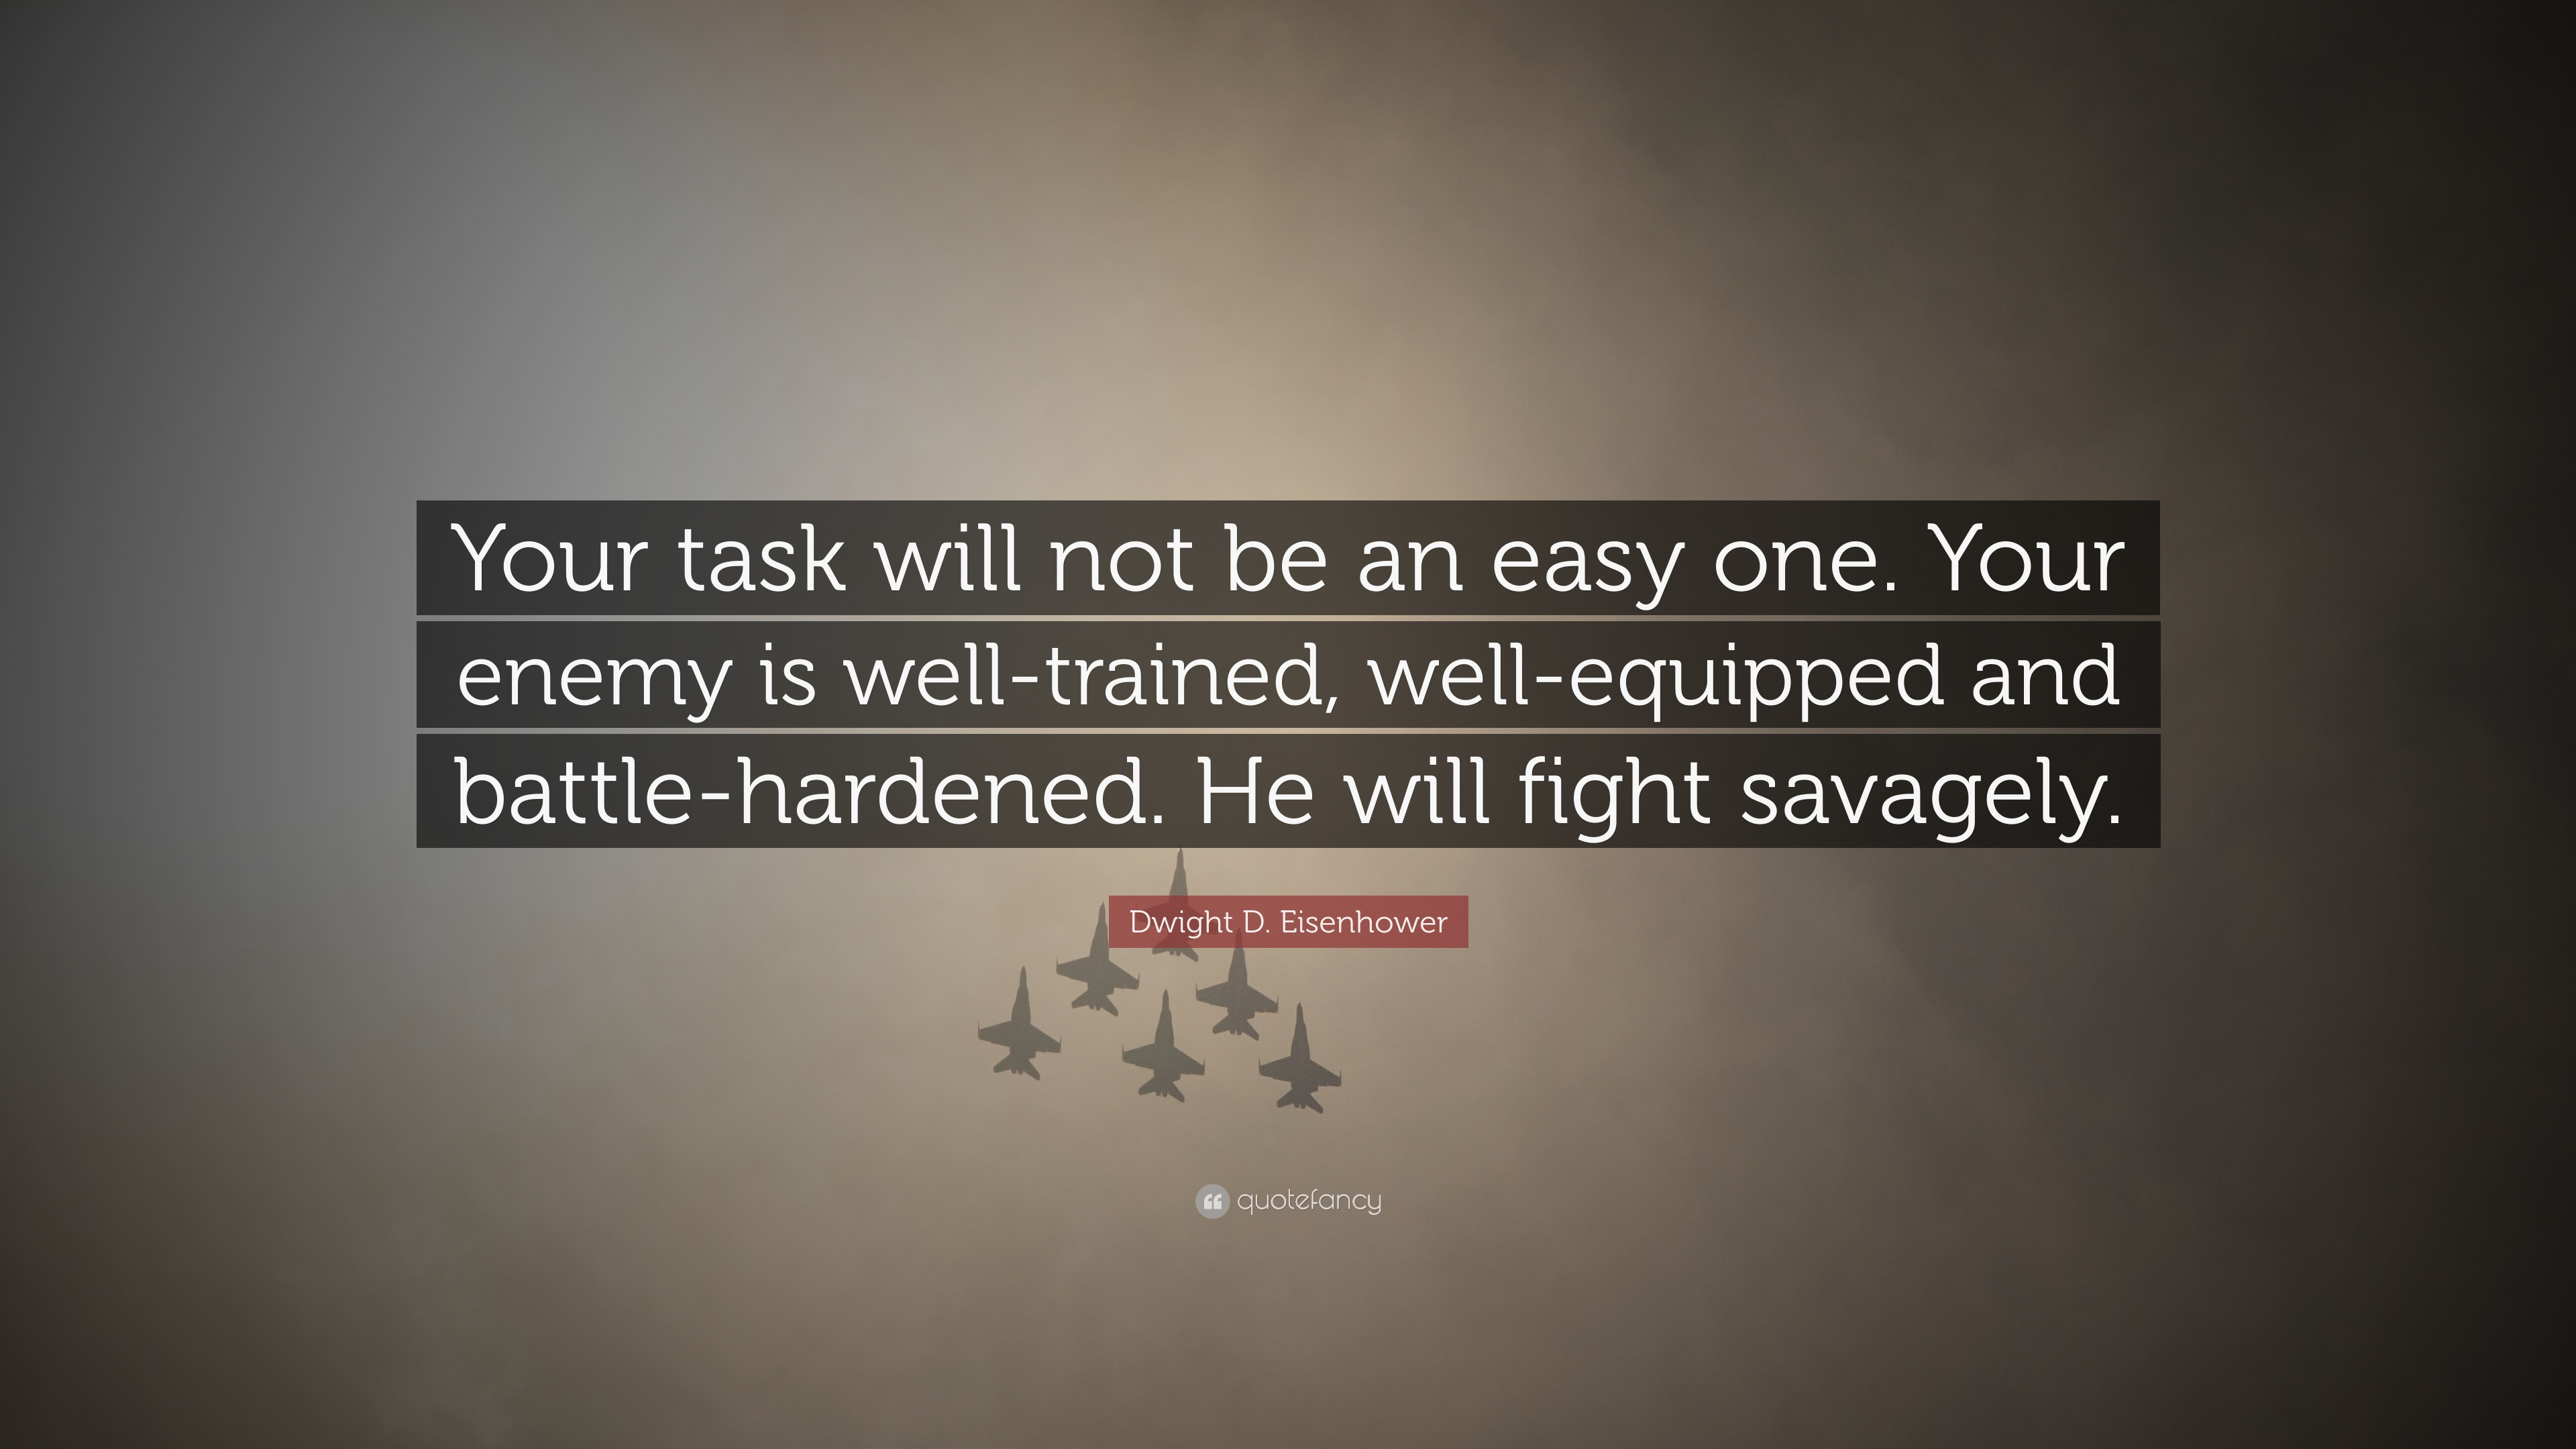 Dwight D Eisenhower Quote Your Task Will Not Be An Easy One Your